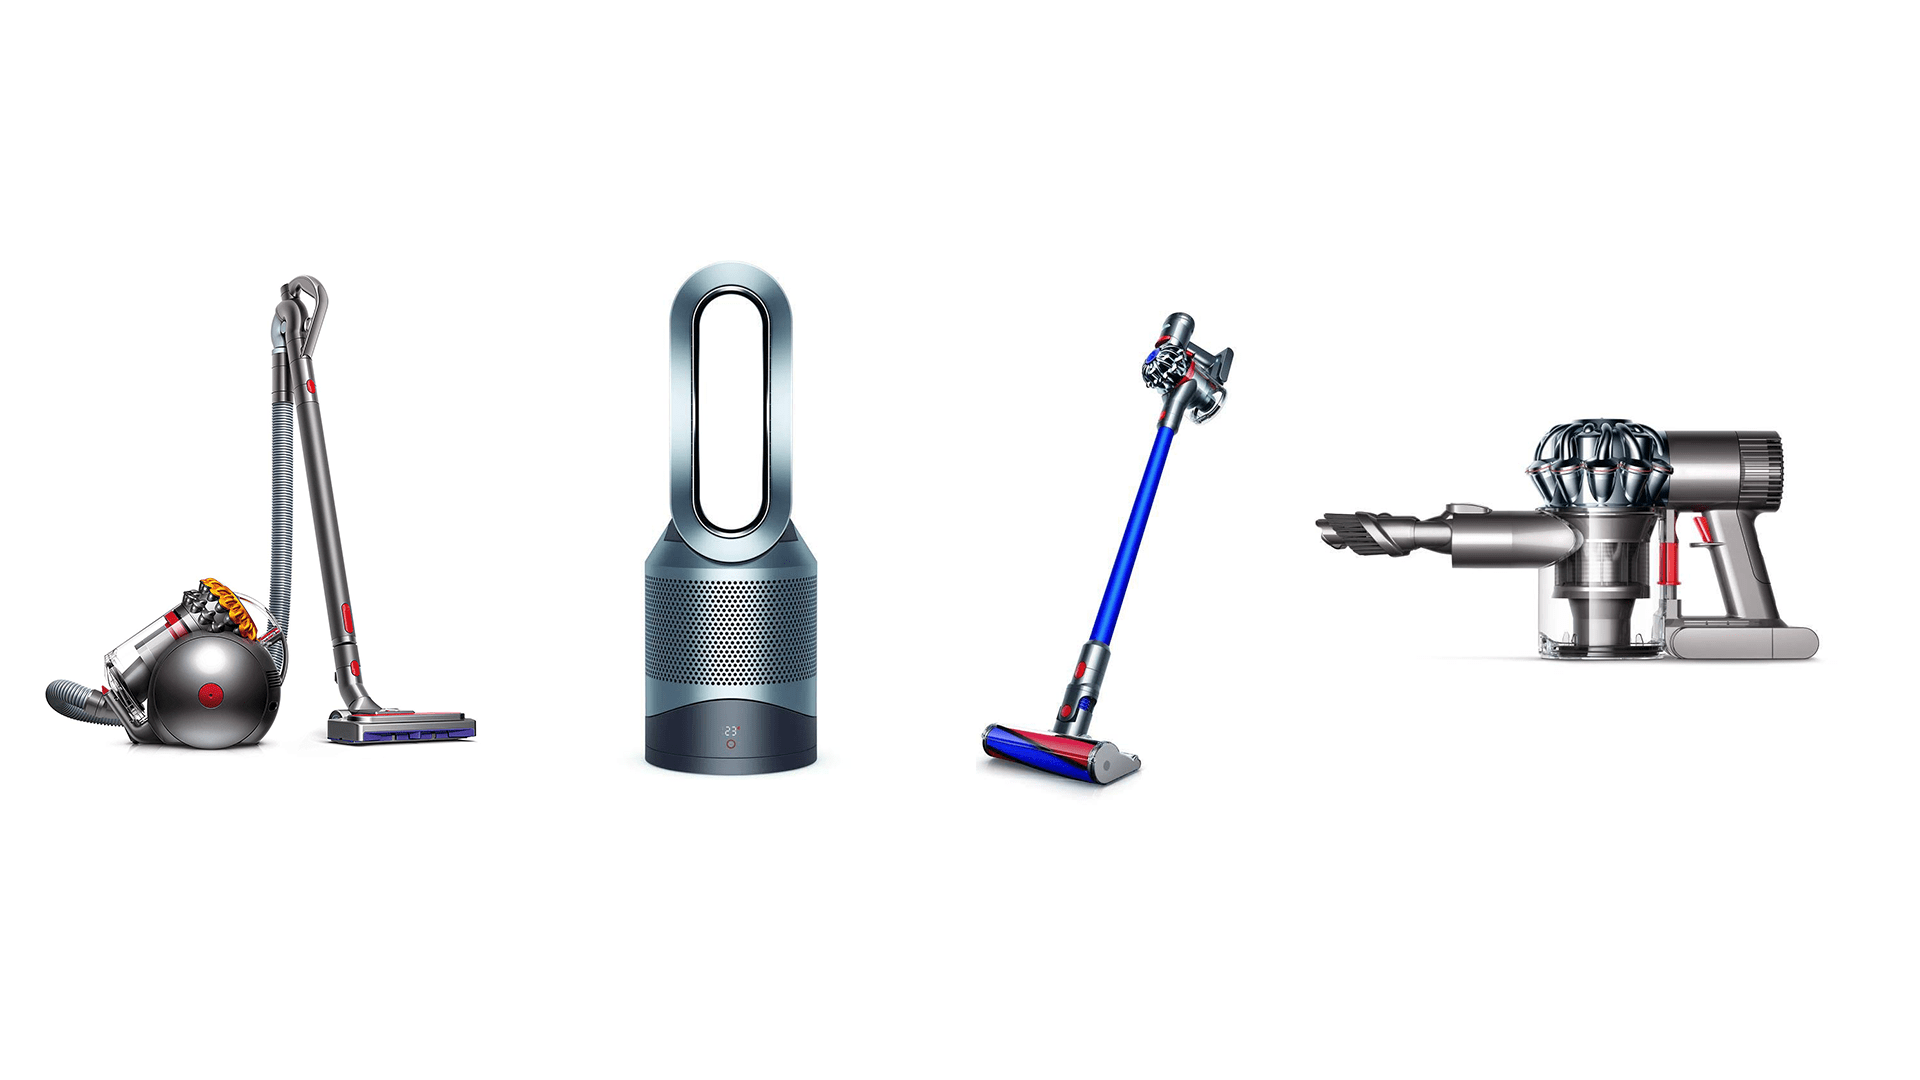 d stockage aspirateurs dyson partir de 129 euros sur amazon frandroid. Black Bedroom Furniture Sets. Home Design Ideas